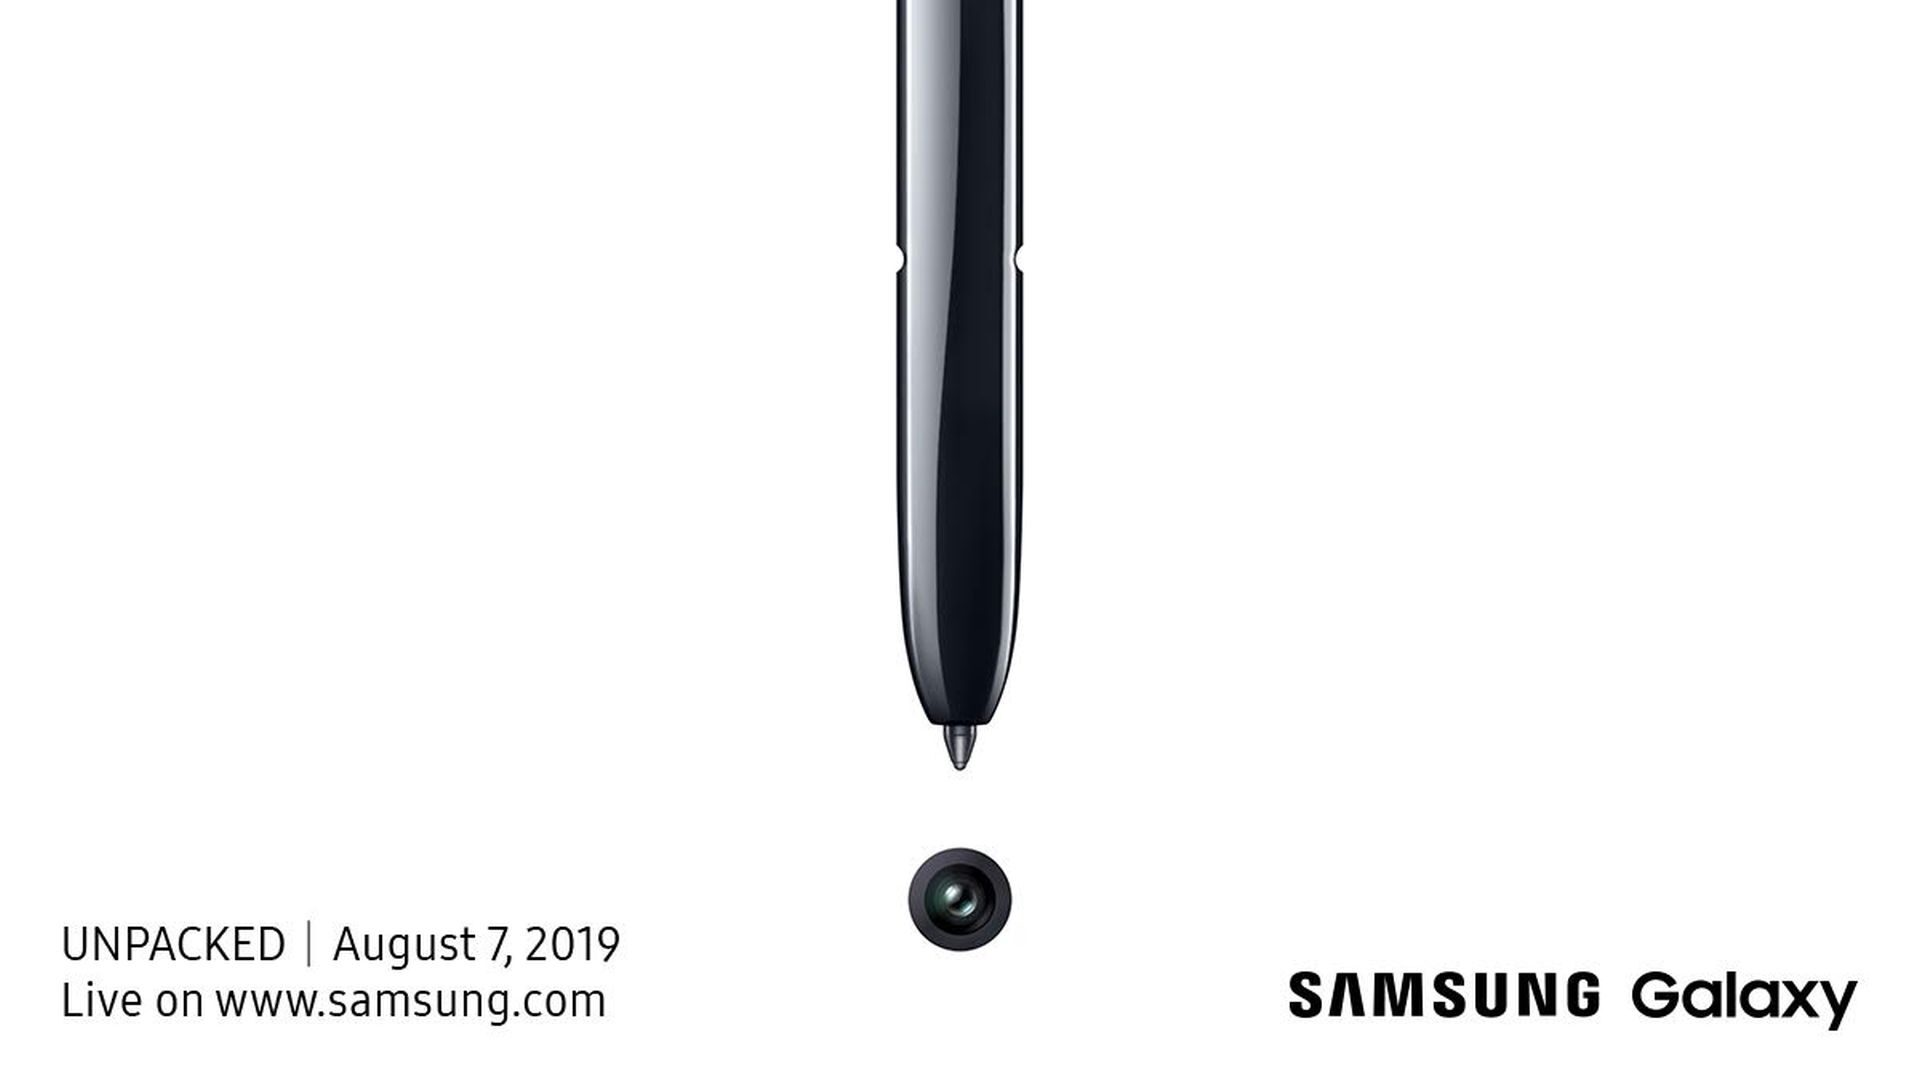 Samsung Galaxy Note 10 teaser